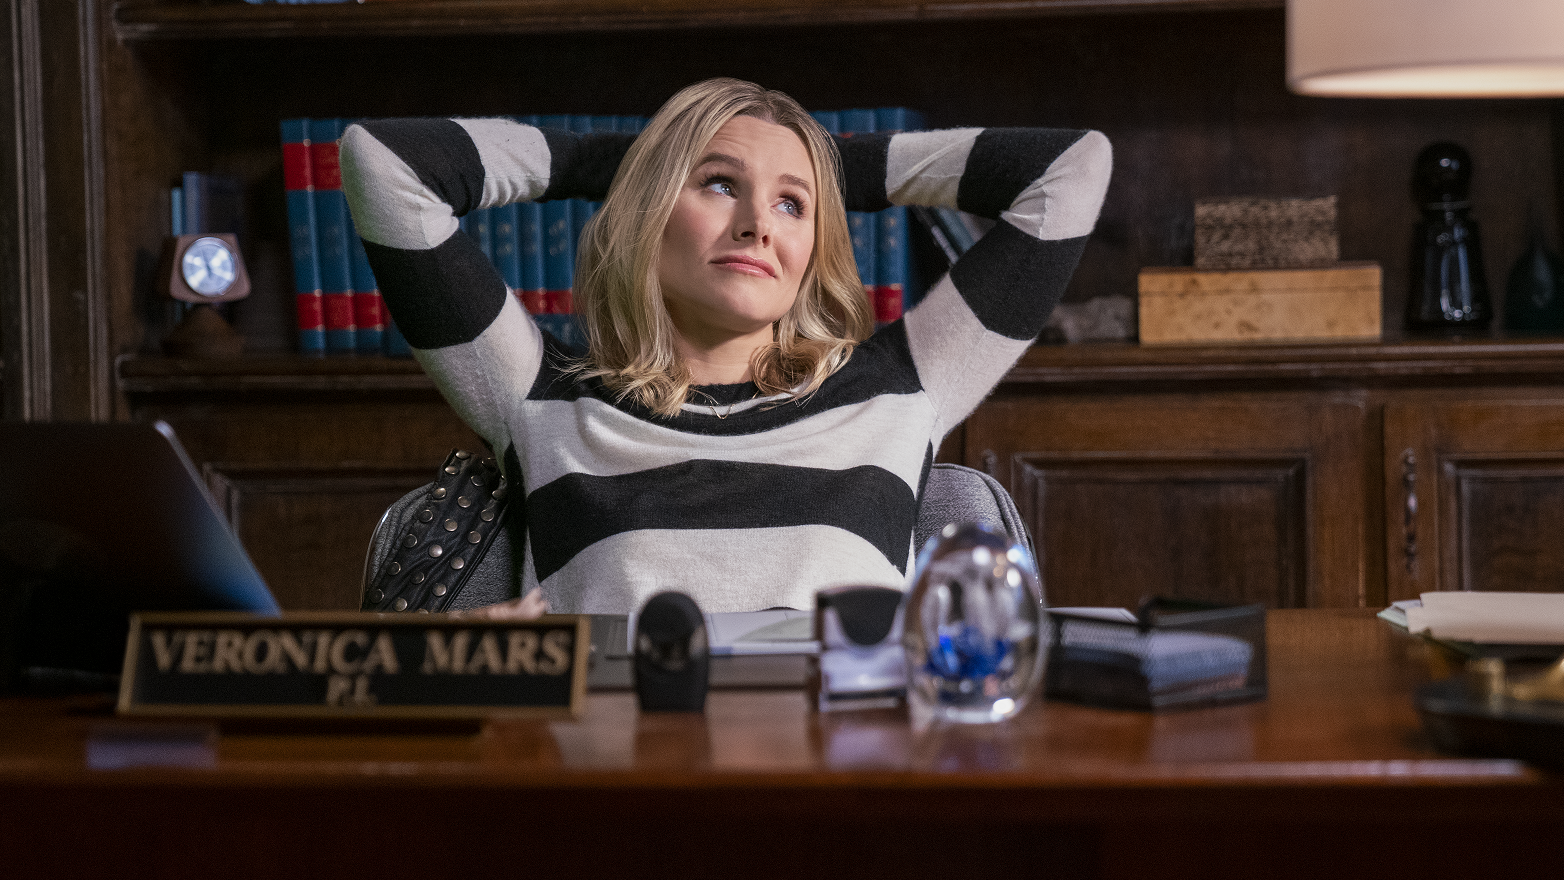 'Veronica Mars' Offers More Than Nostalgia; She's Always Been A Survivor